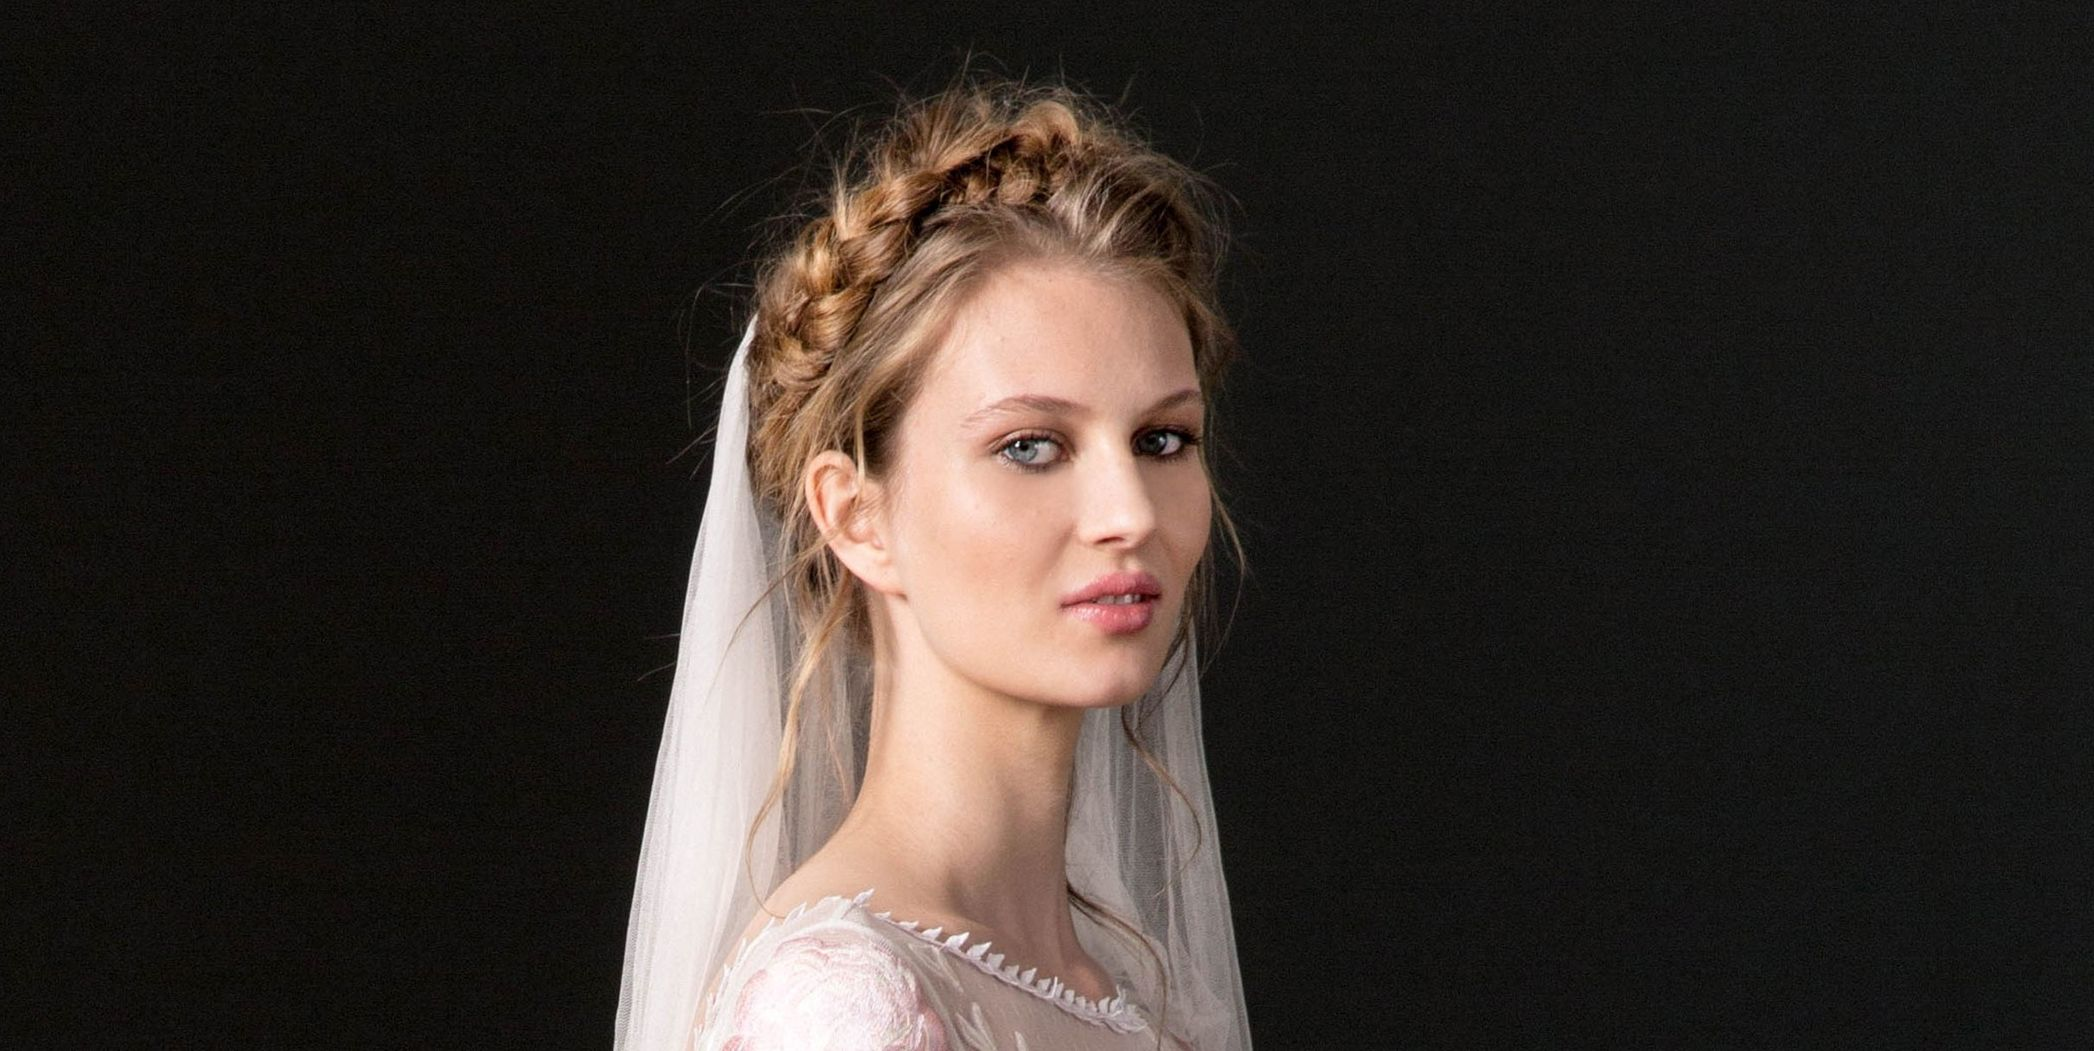 Temperley London wedding braids hairstyles 2018